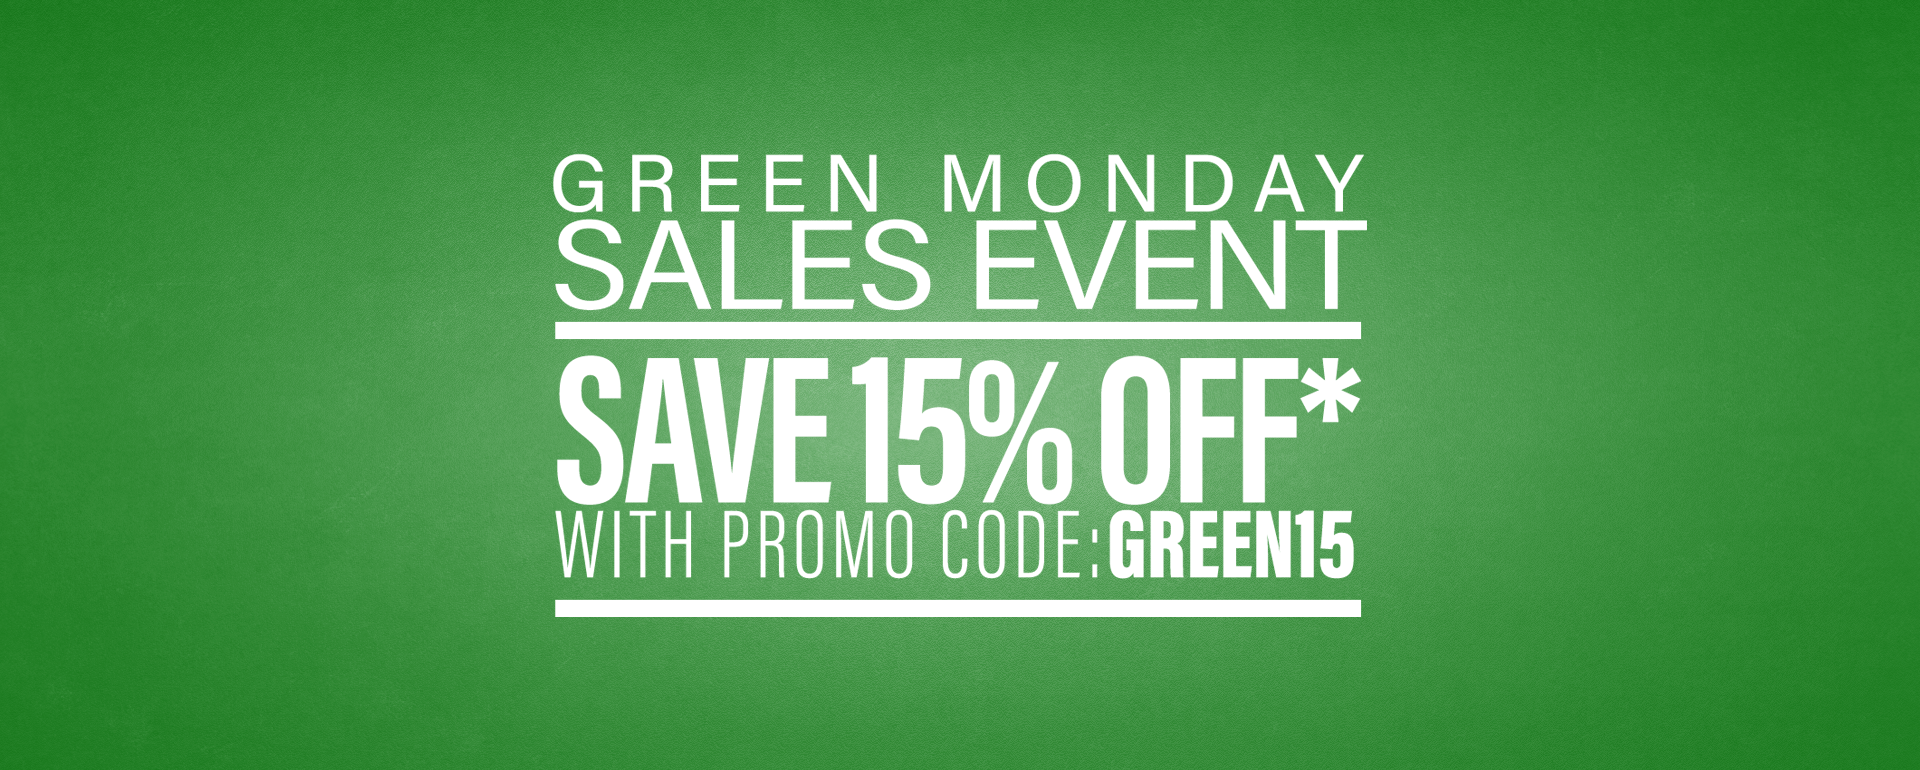 green-monday-2020.png